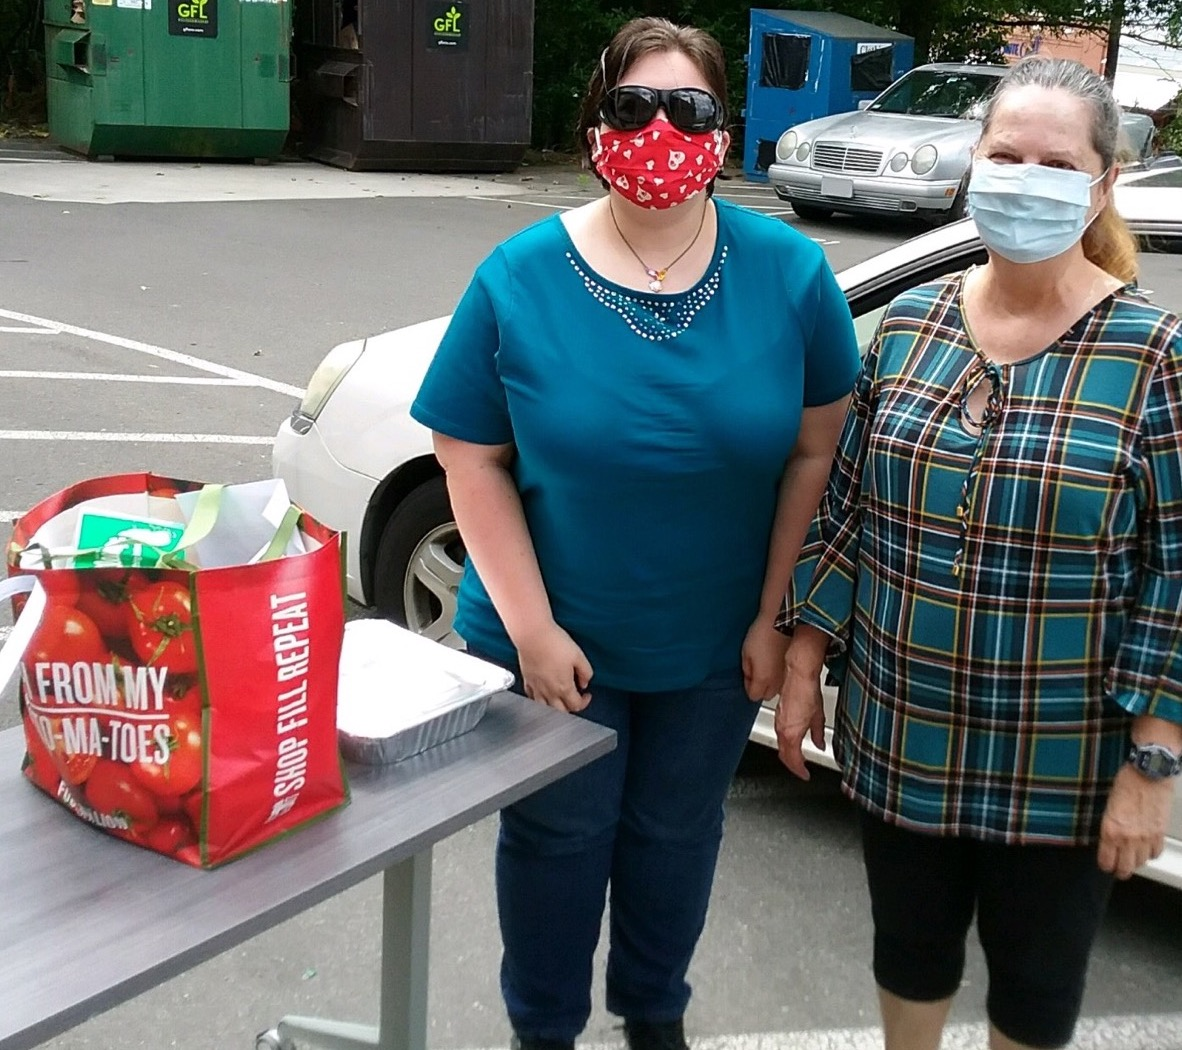 two students with face masks standing next to their bag of groceries